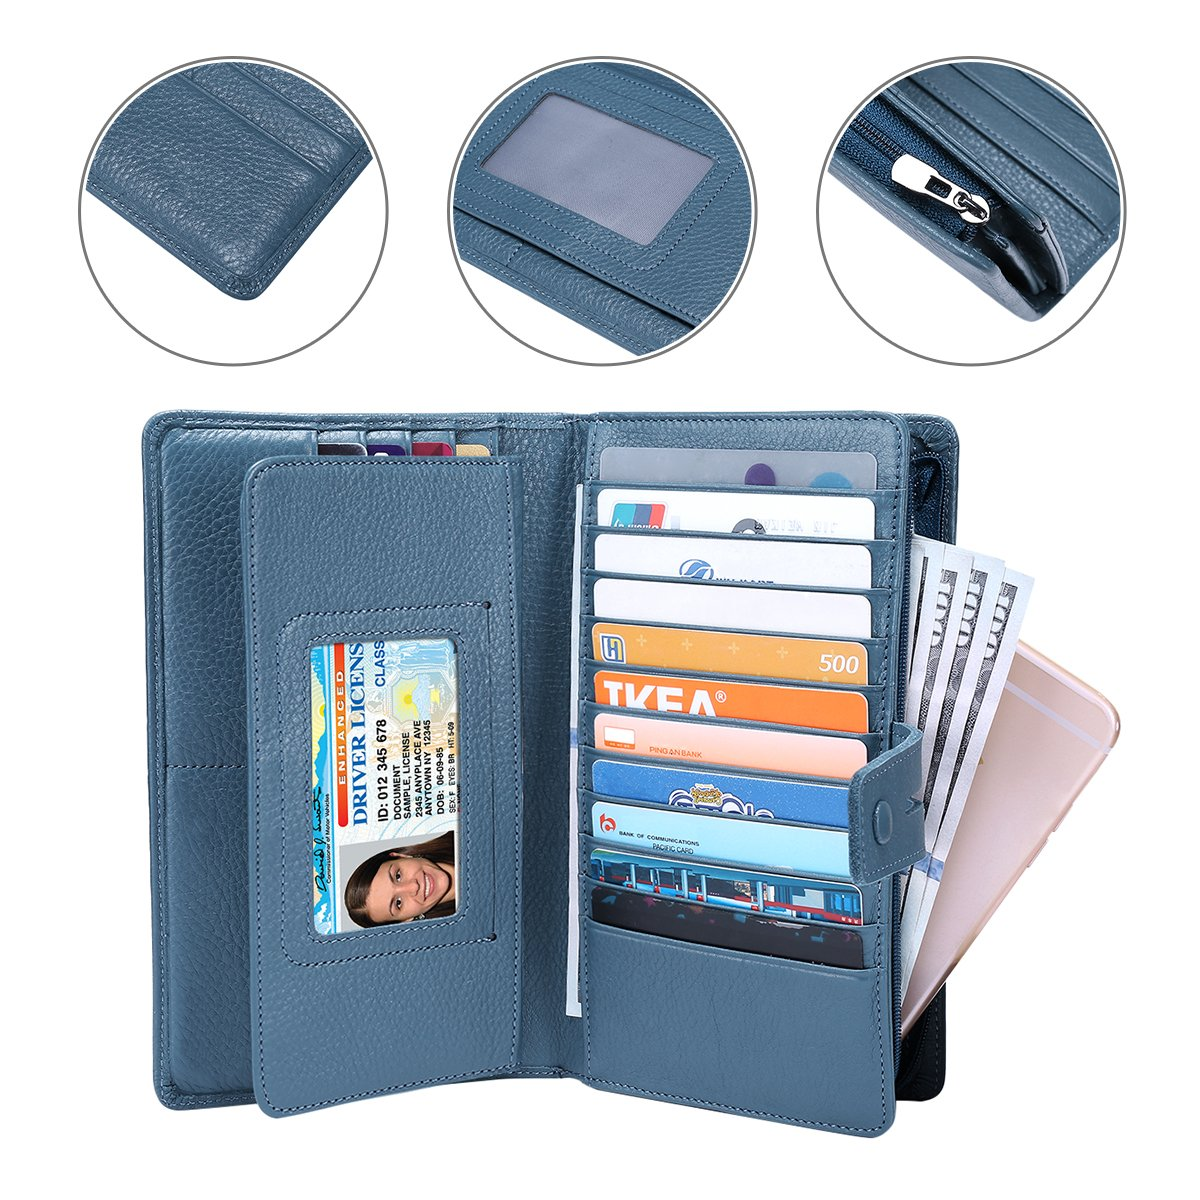 ITSLIFE Women's Big Fat RFID Blocking Leather Wallet Clutch Organizer with Checkbook Holder(Blue) by ITSLIFE (Image #6)